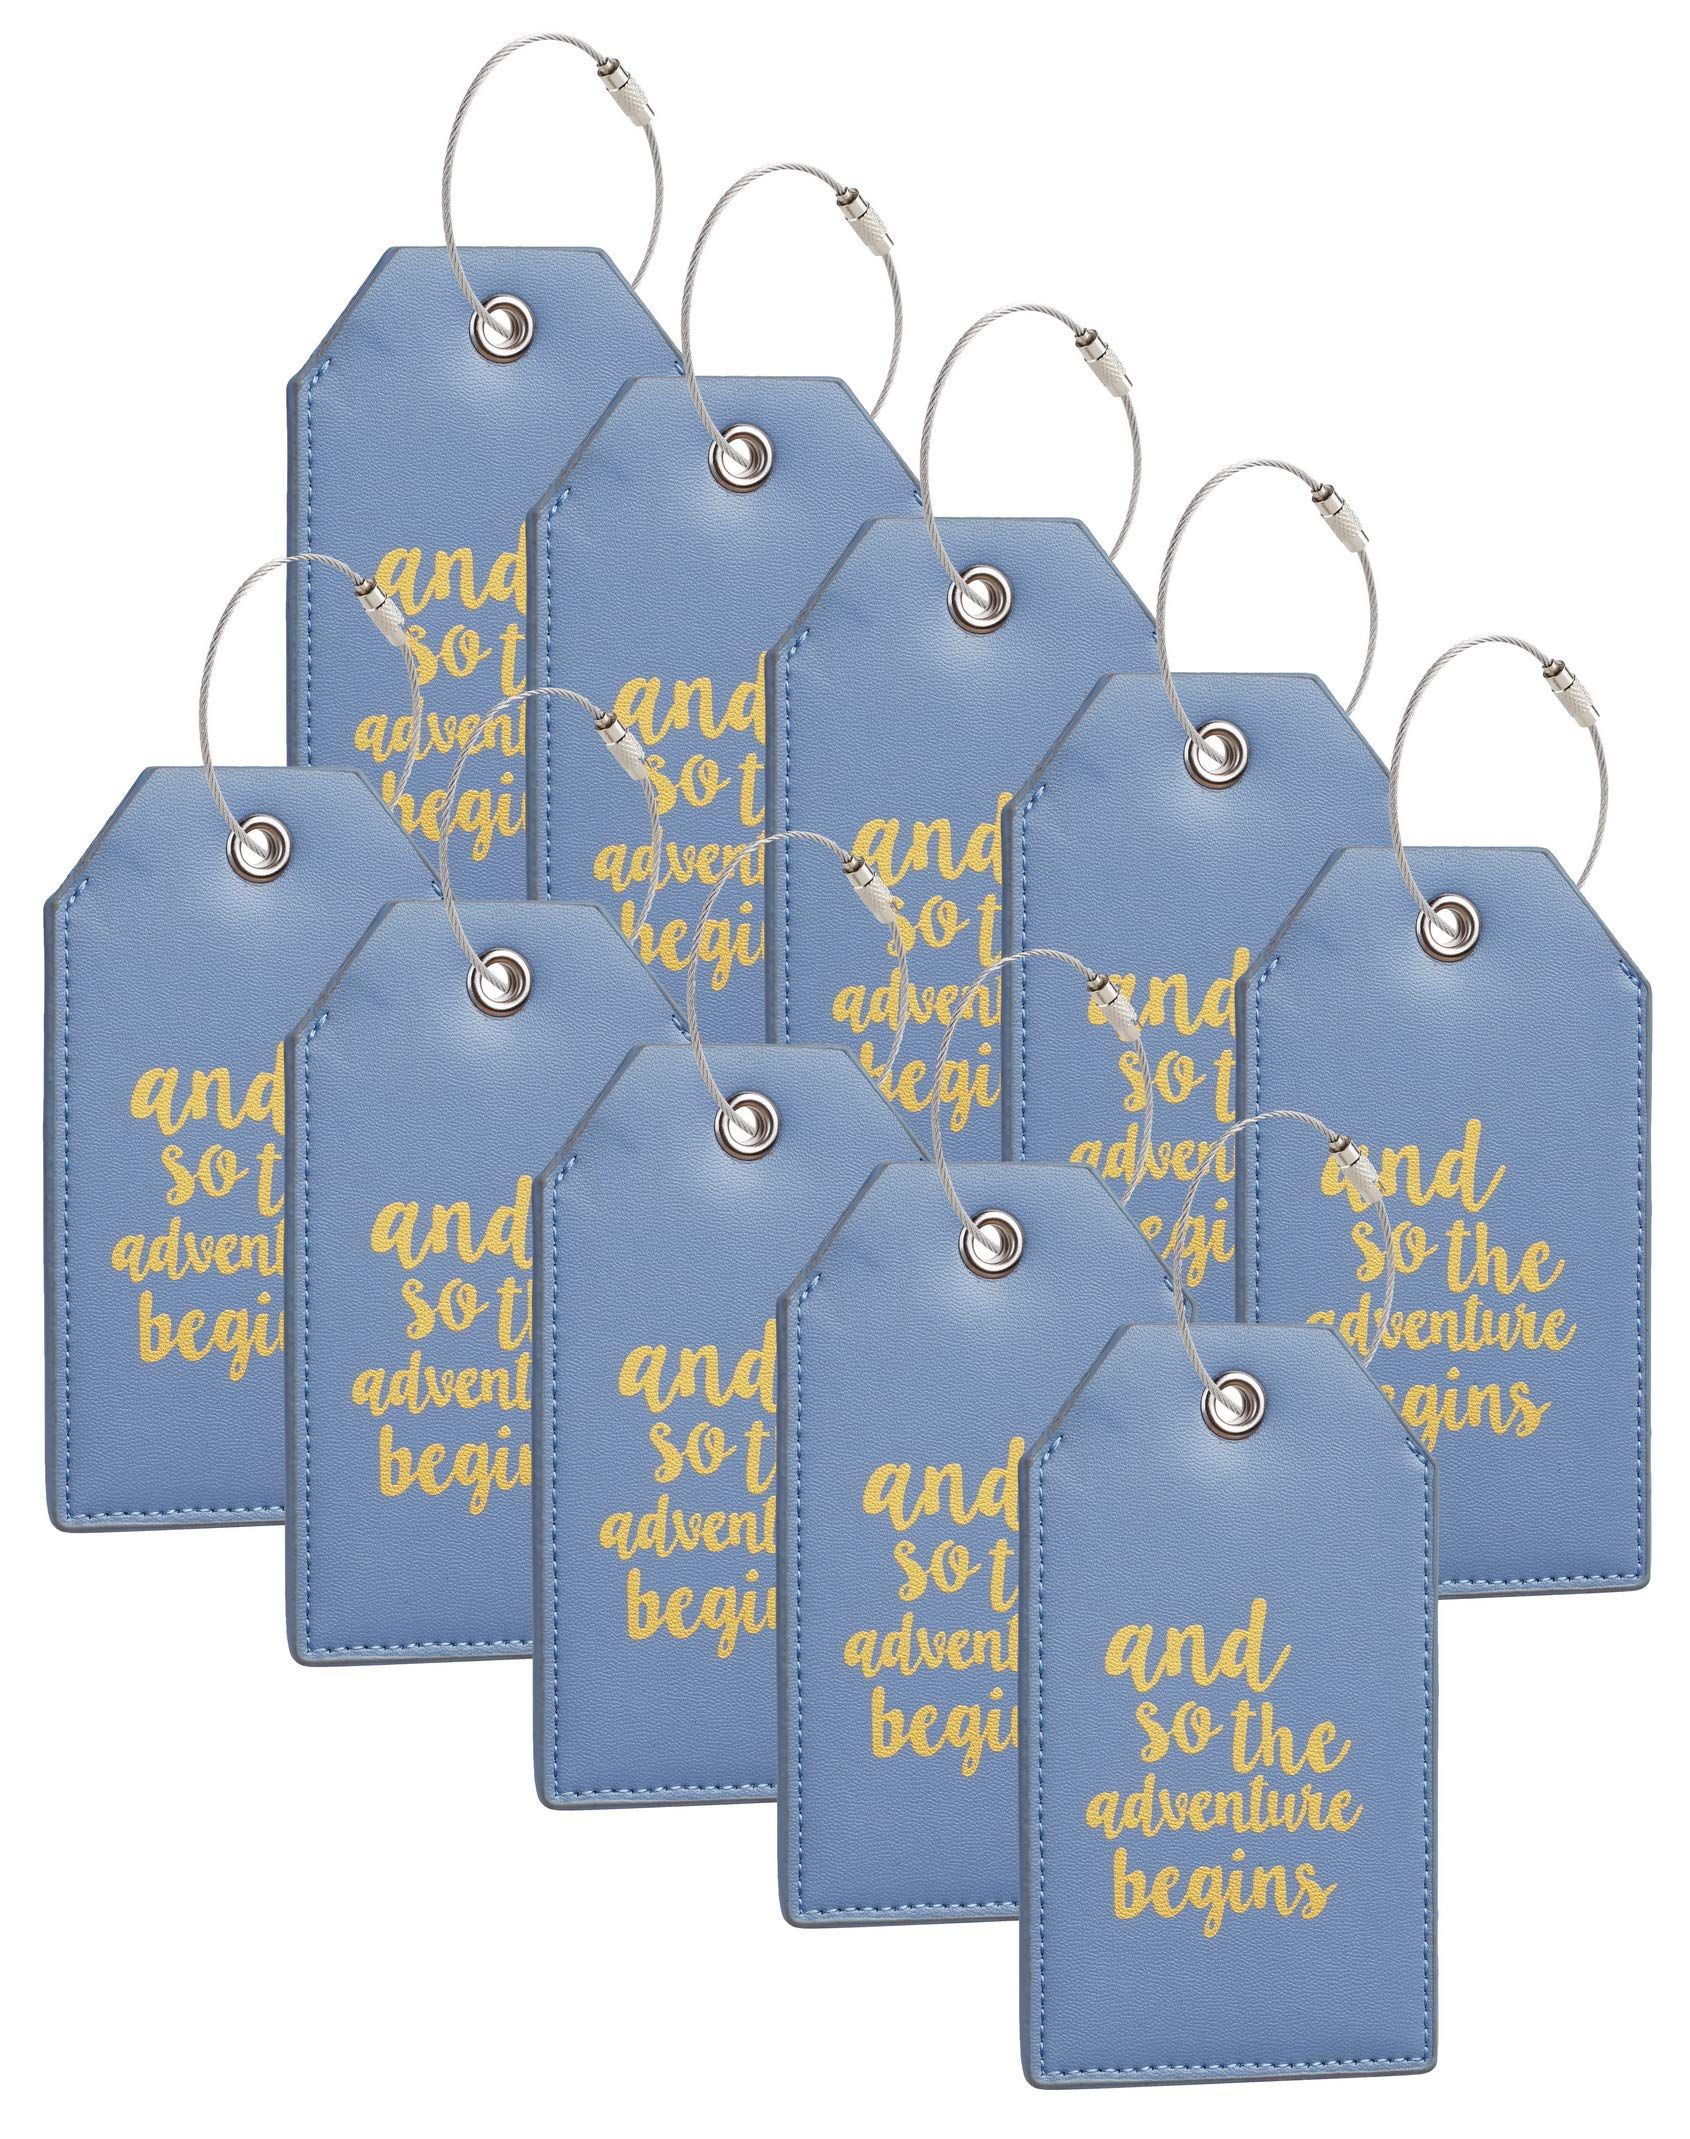 Casmonal Luggage Tags with Full Back Privacy Cover w/Steel Loops (blue 10 pcs set)